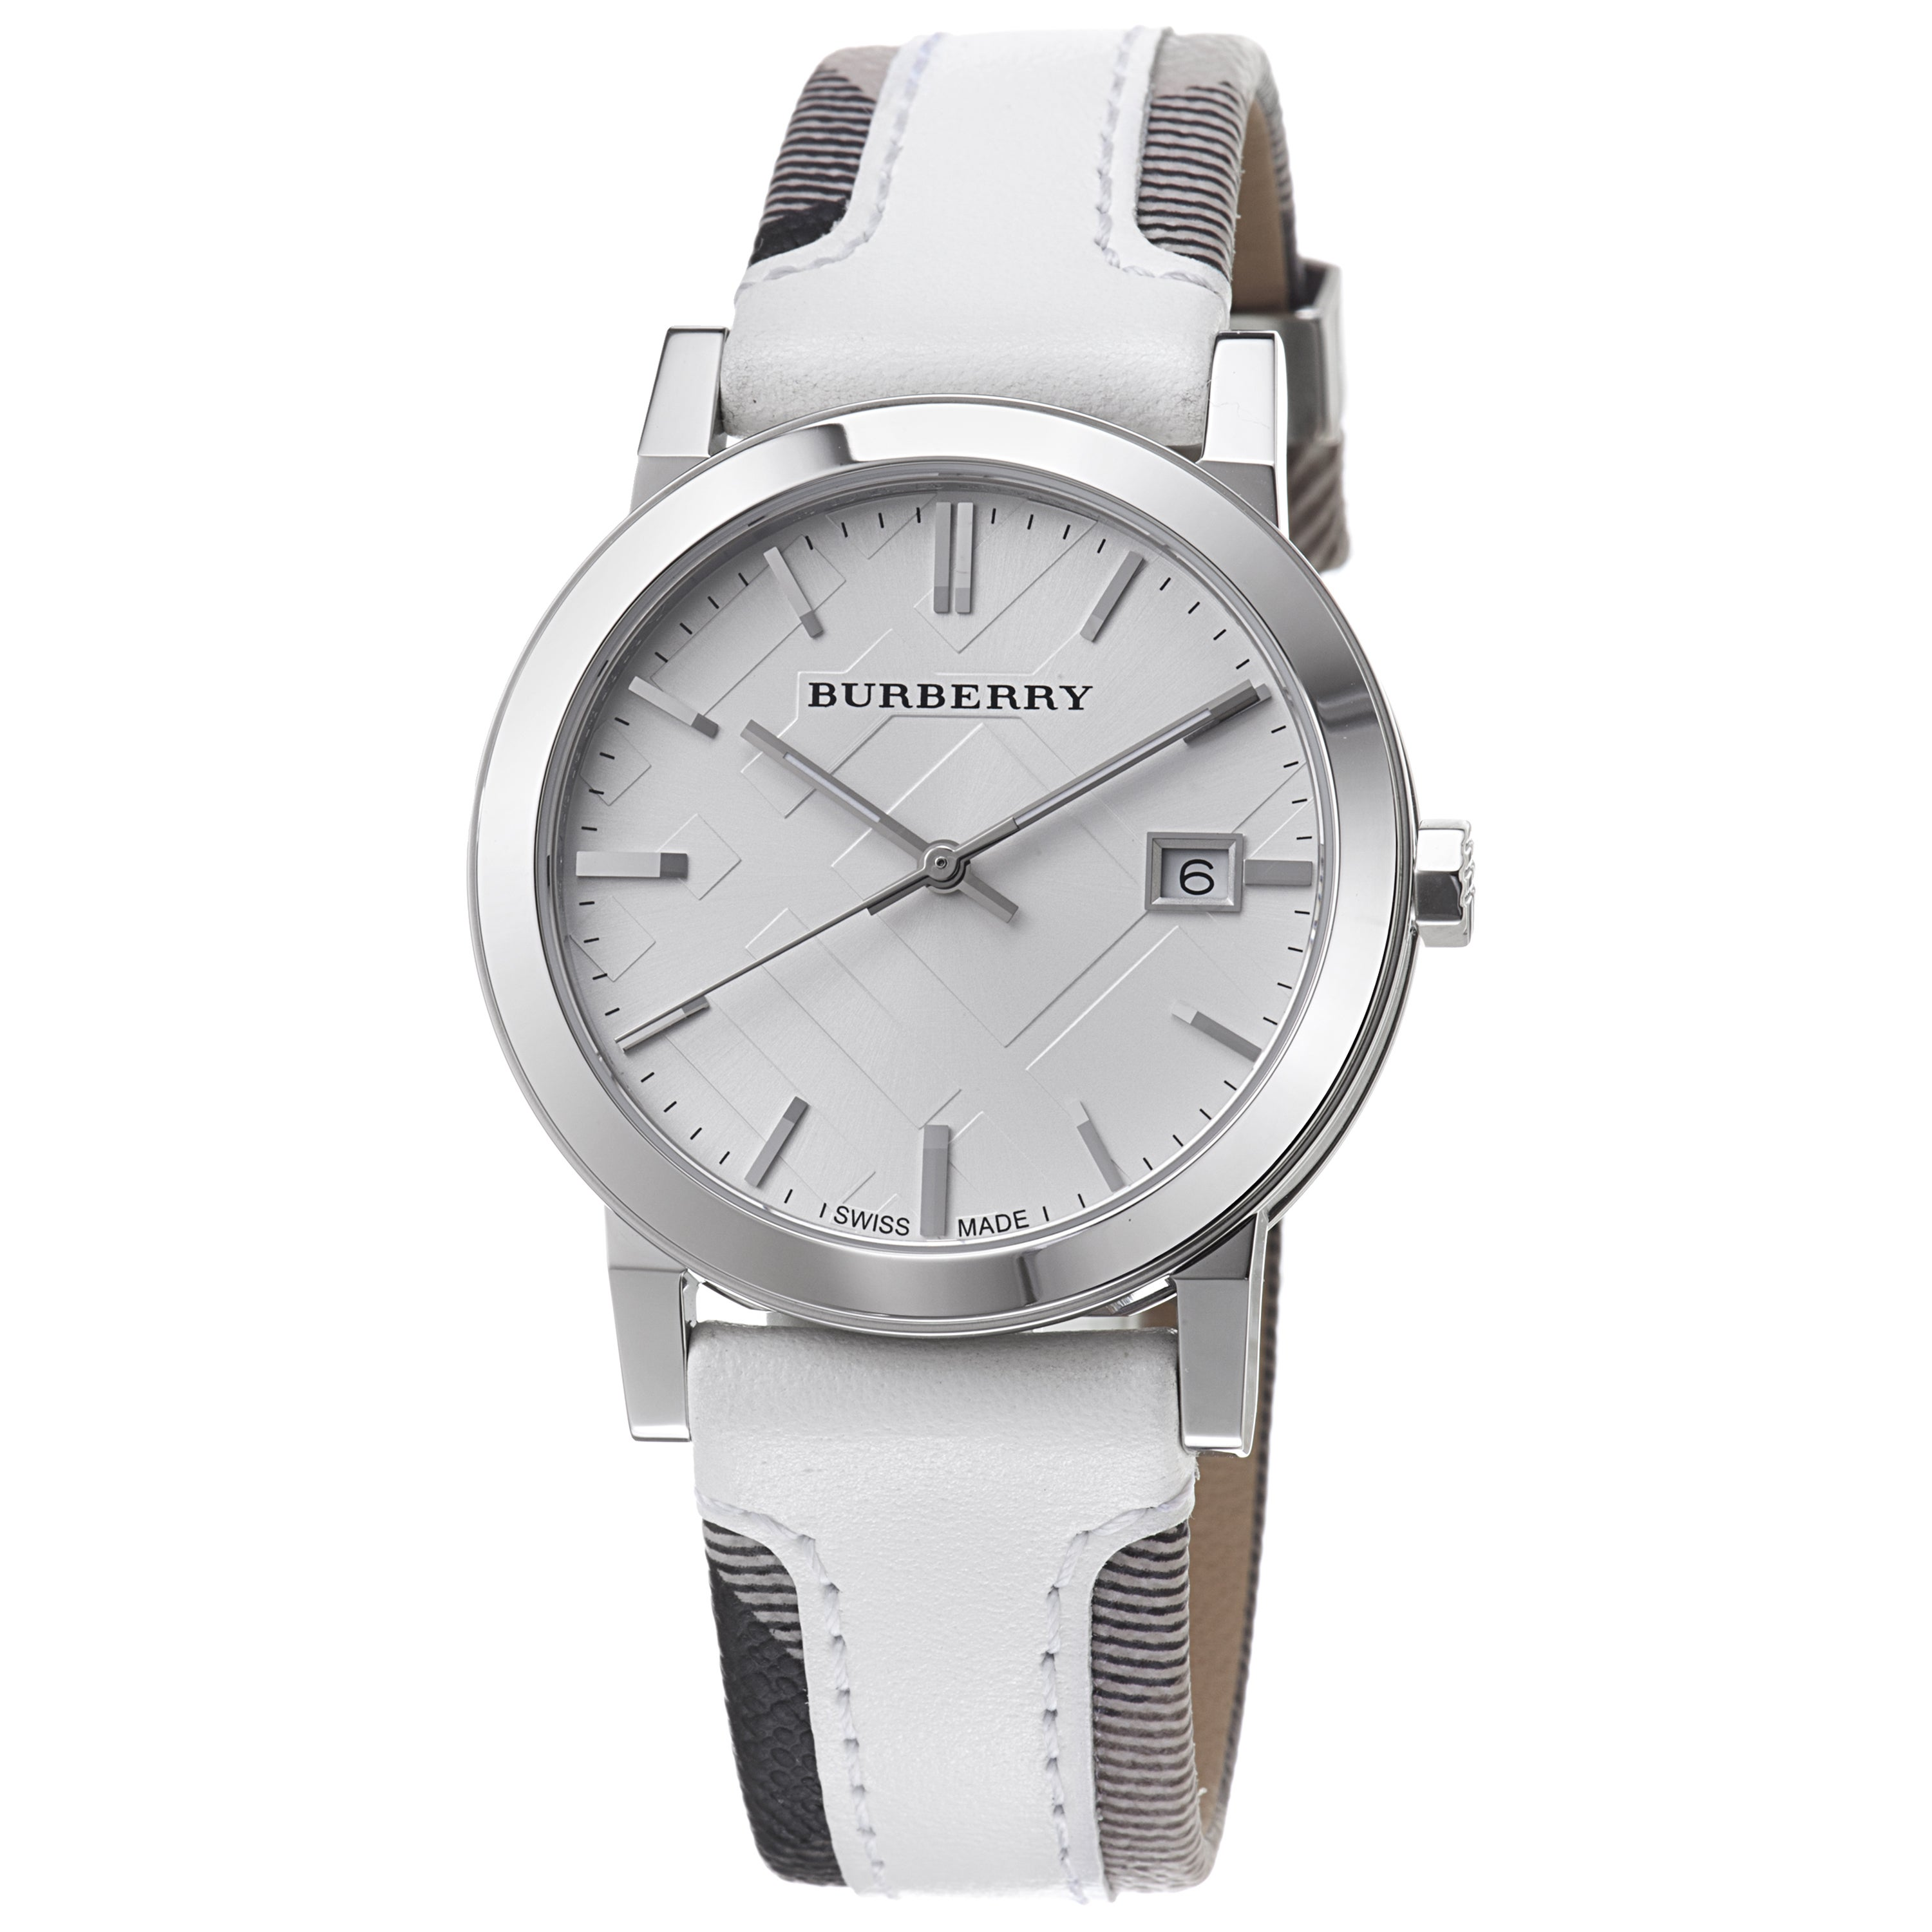 7d0fe279576a Shop Burberry Men's 'Large Check' Smoked Check Fabric Strap Quartz Watch -  Free Shipping Today - Overstock - 6720199